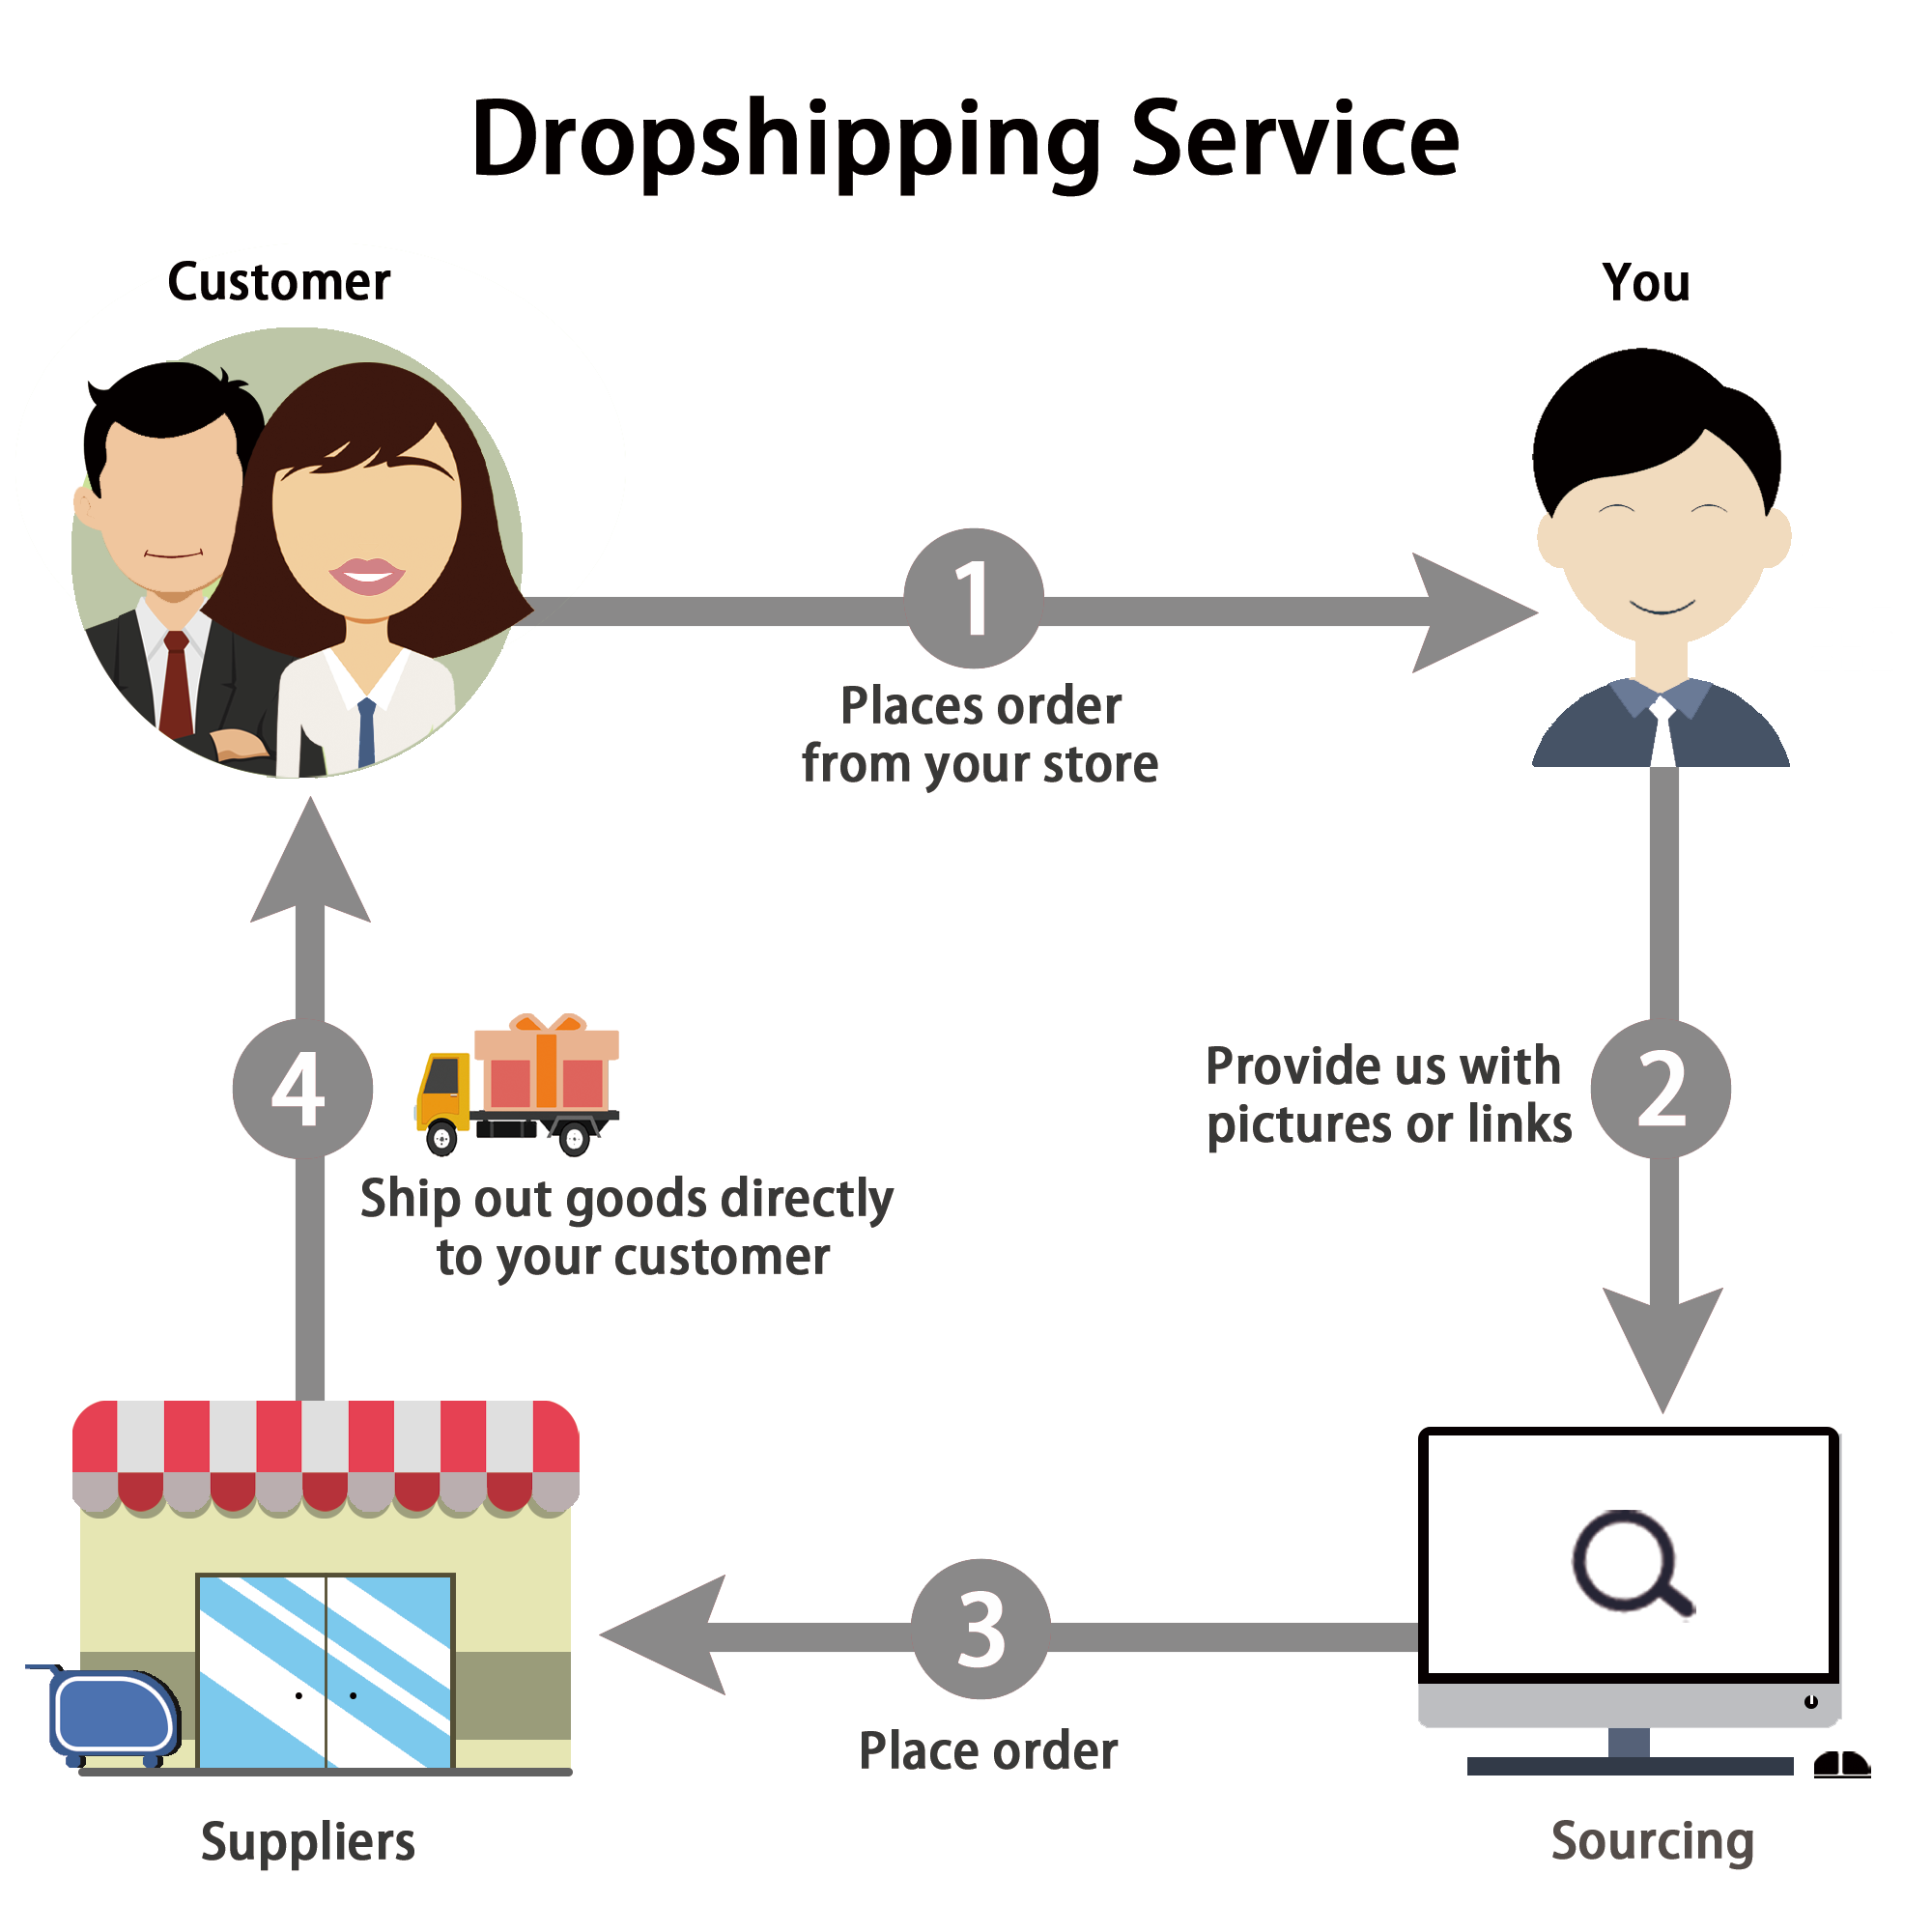 Dropshipping Agen Konsultan Source Service Source Produk Dropshipping